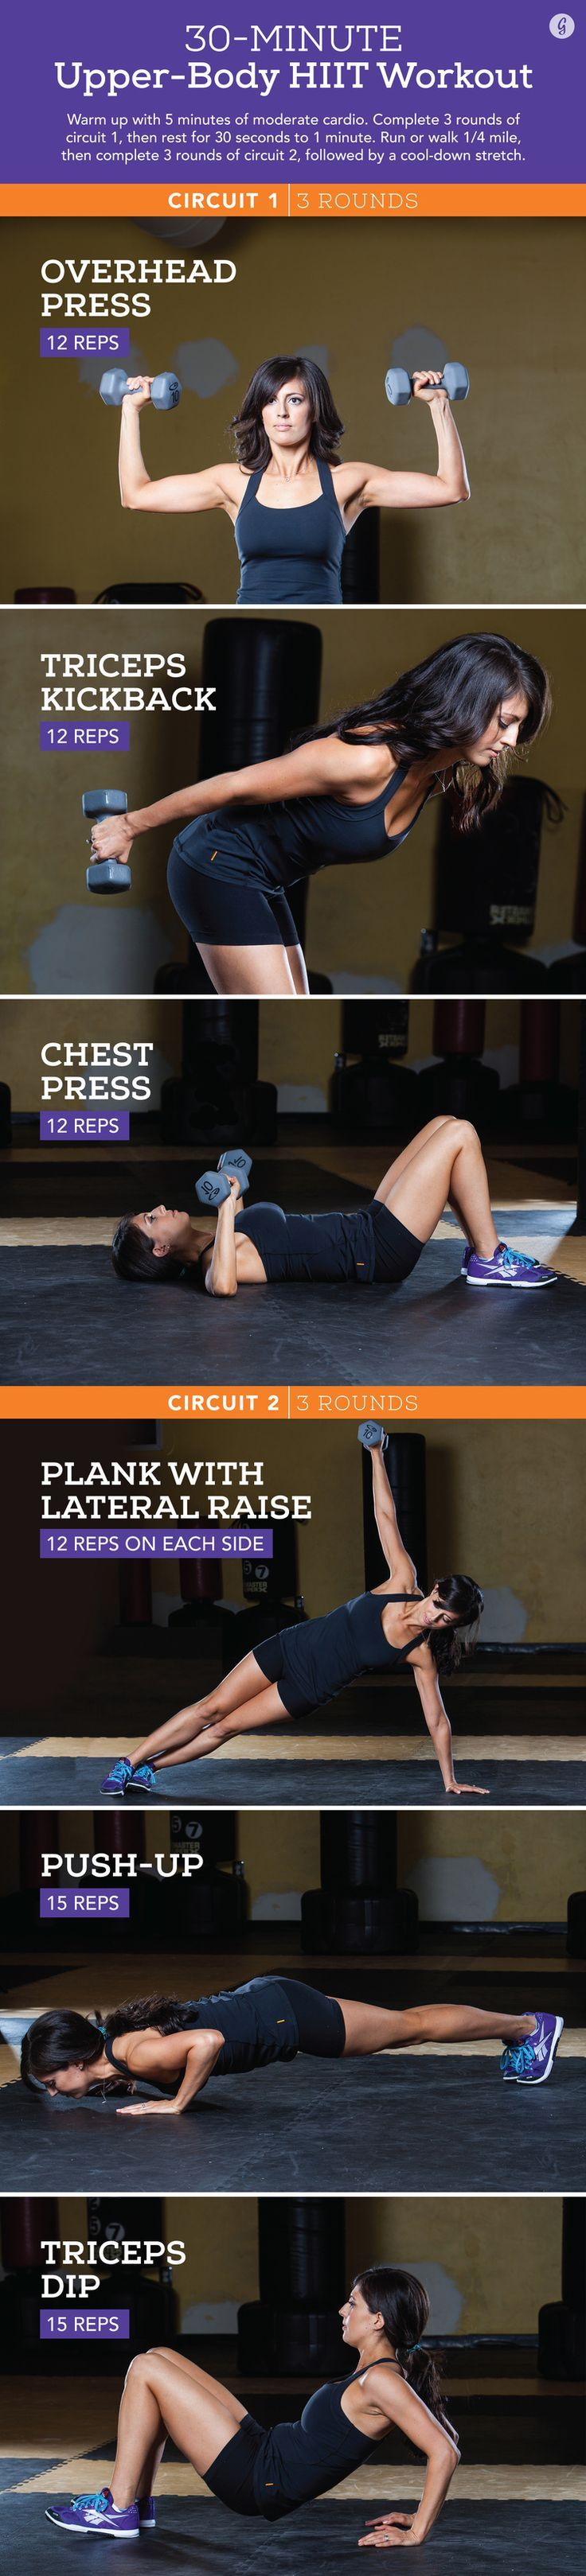 The Quick and Dirty Upper-Body Workout #upperbody #fitness #workout